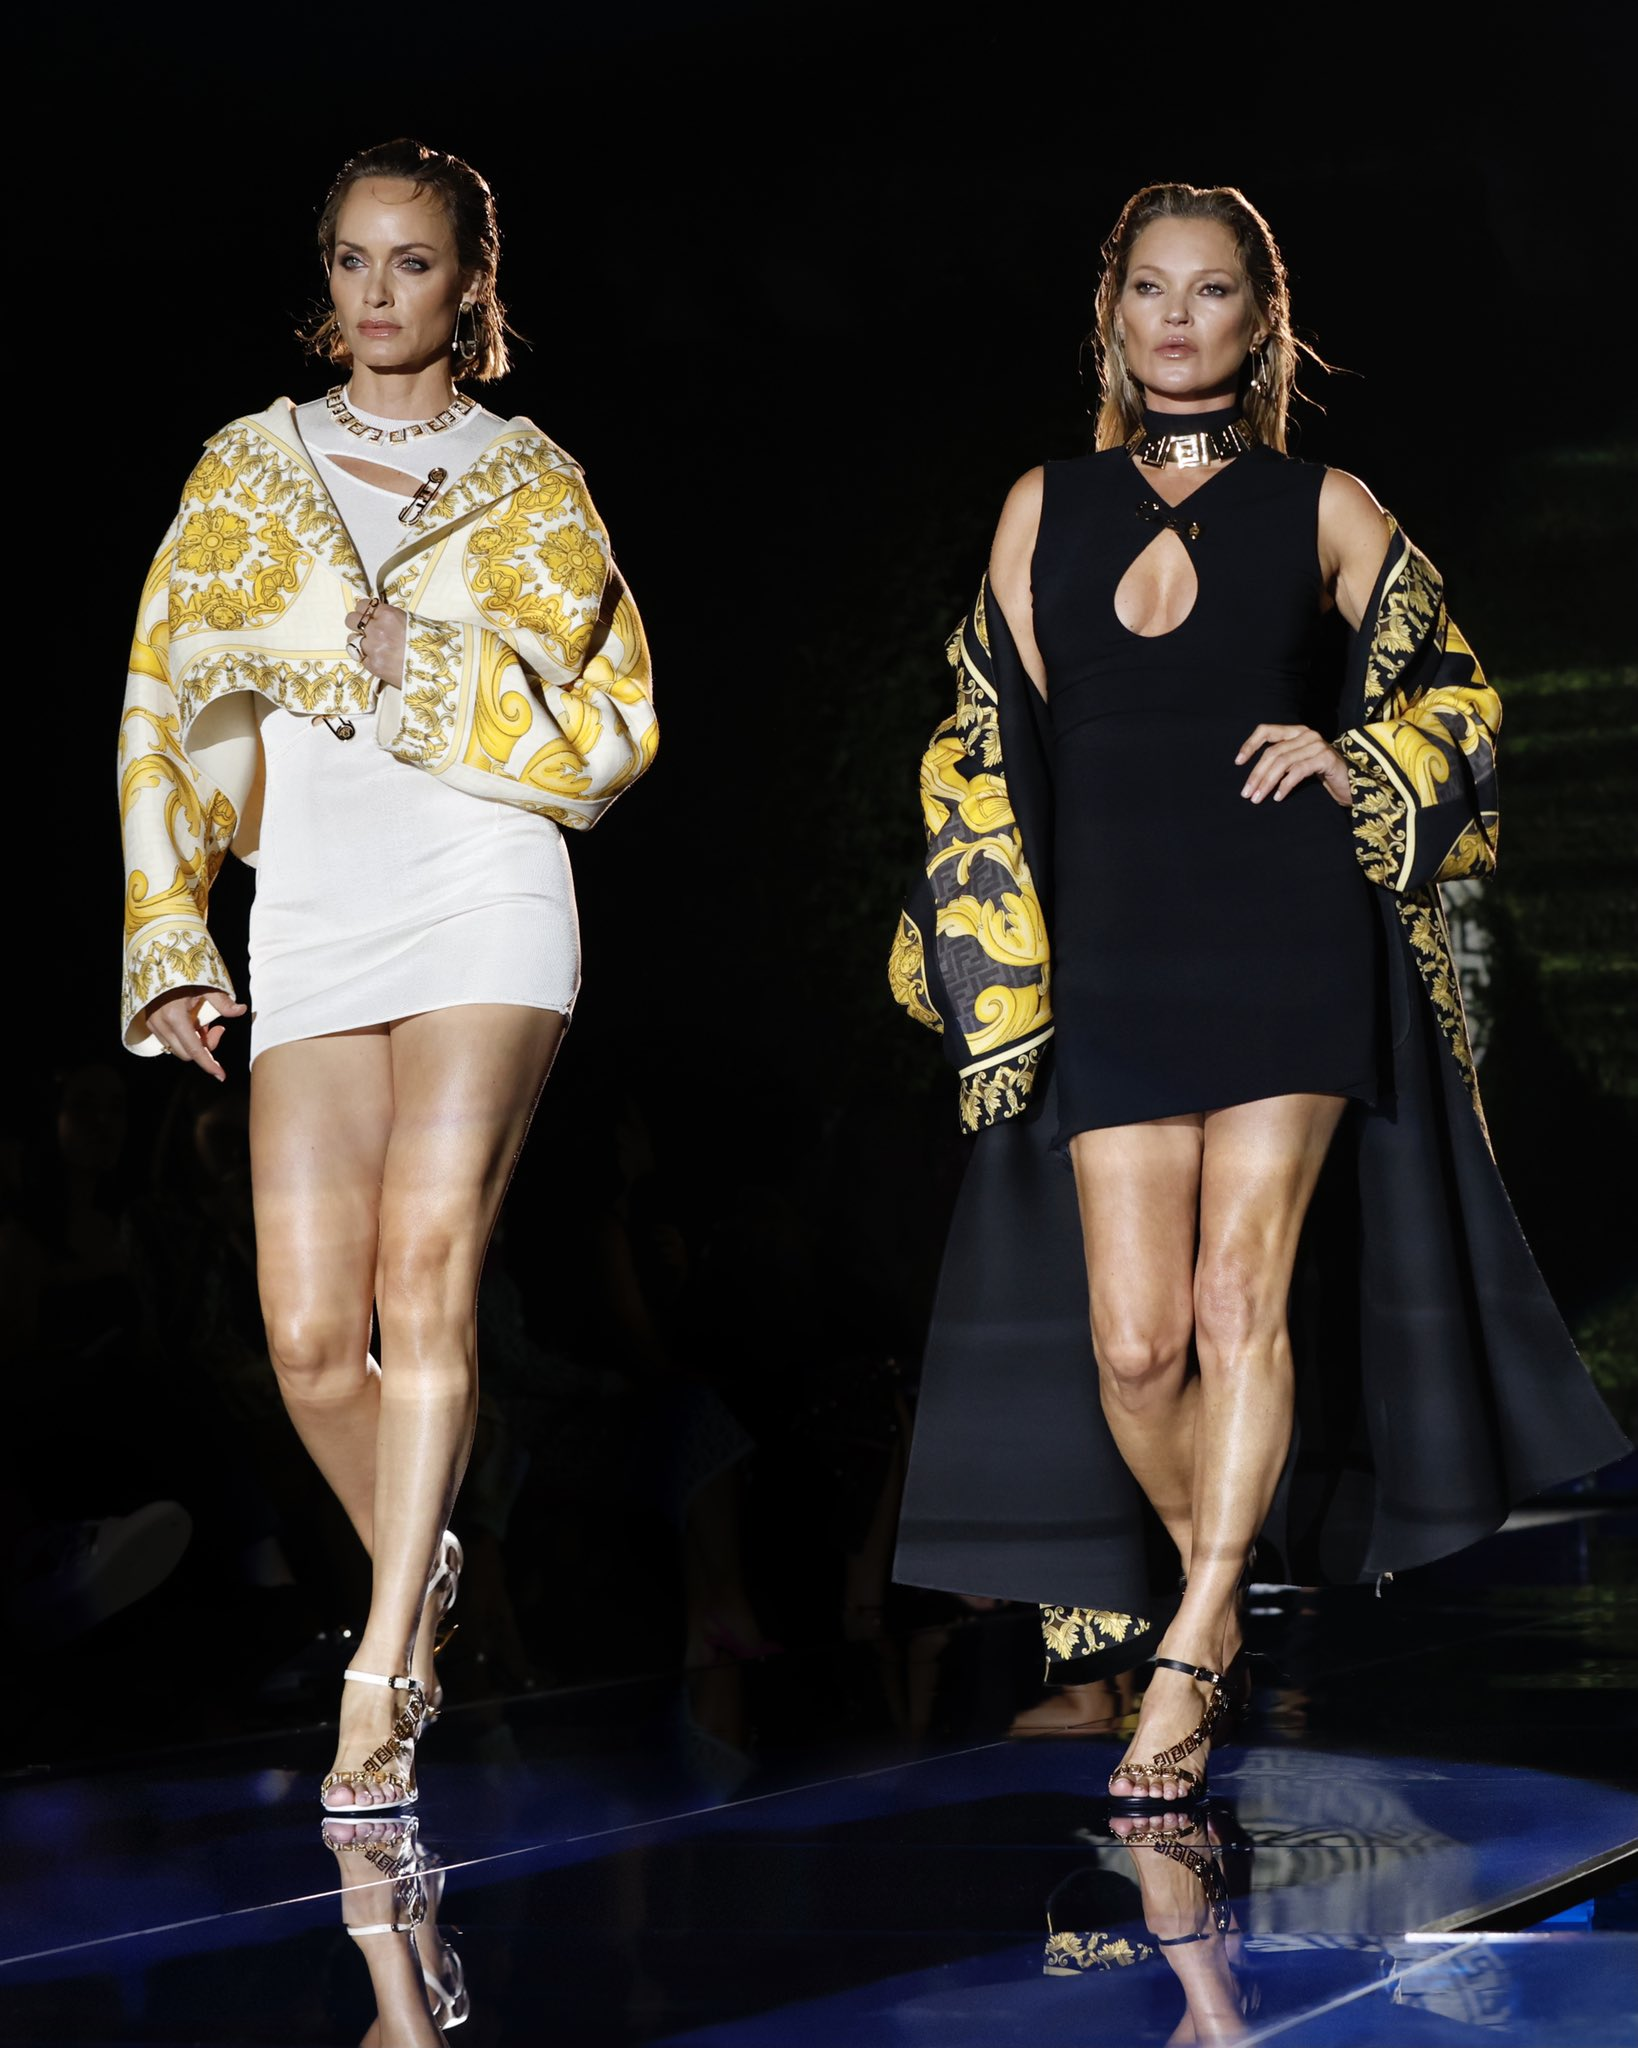 Kate Moss and Amber Valetta model looks from the Versace by Fendi collection